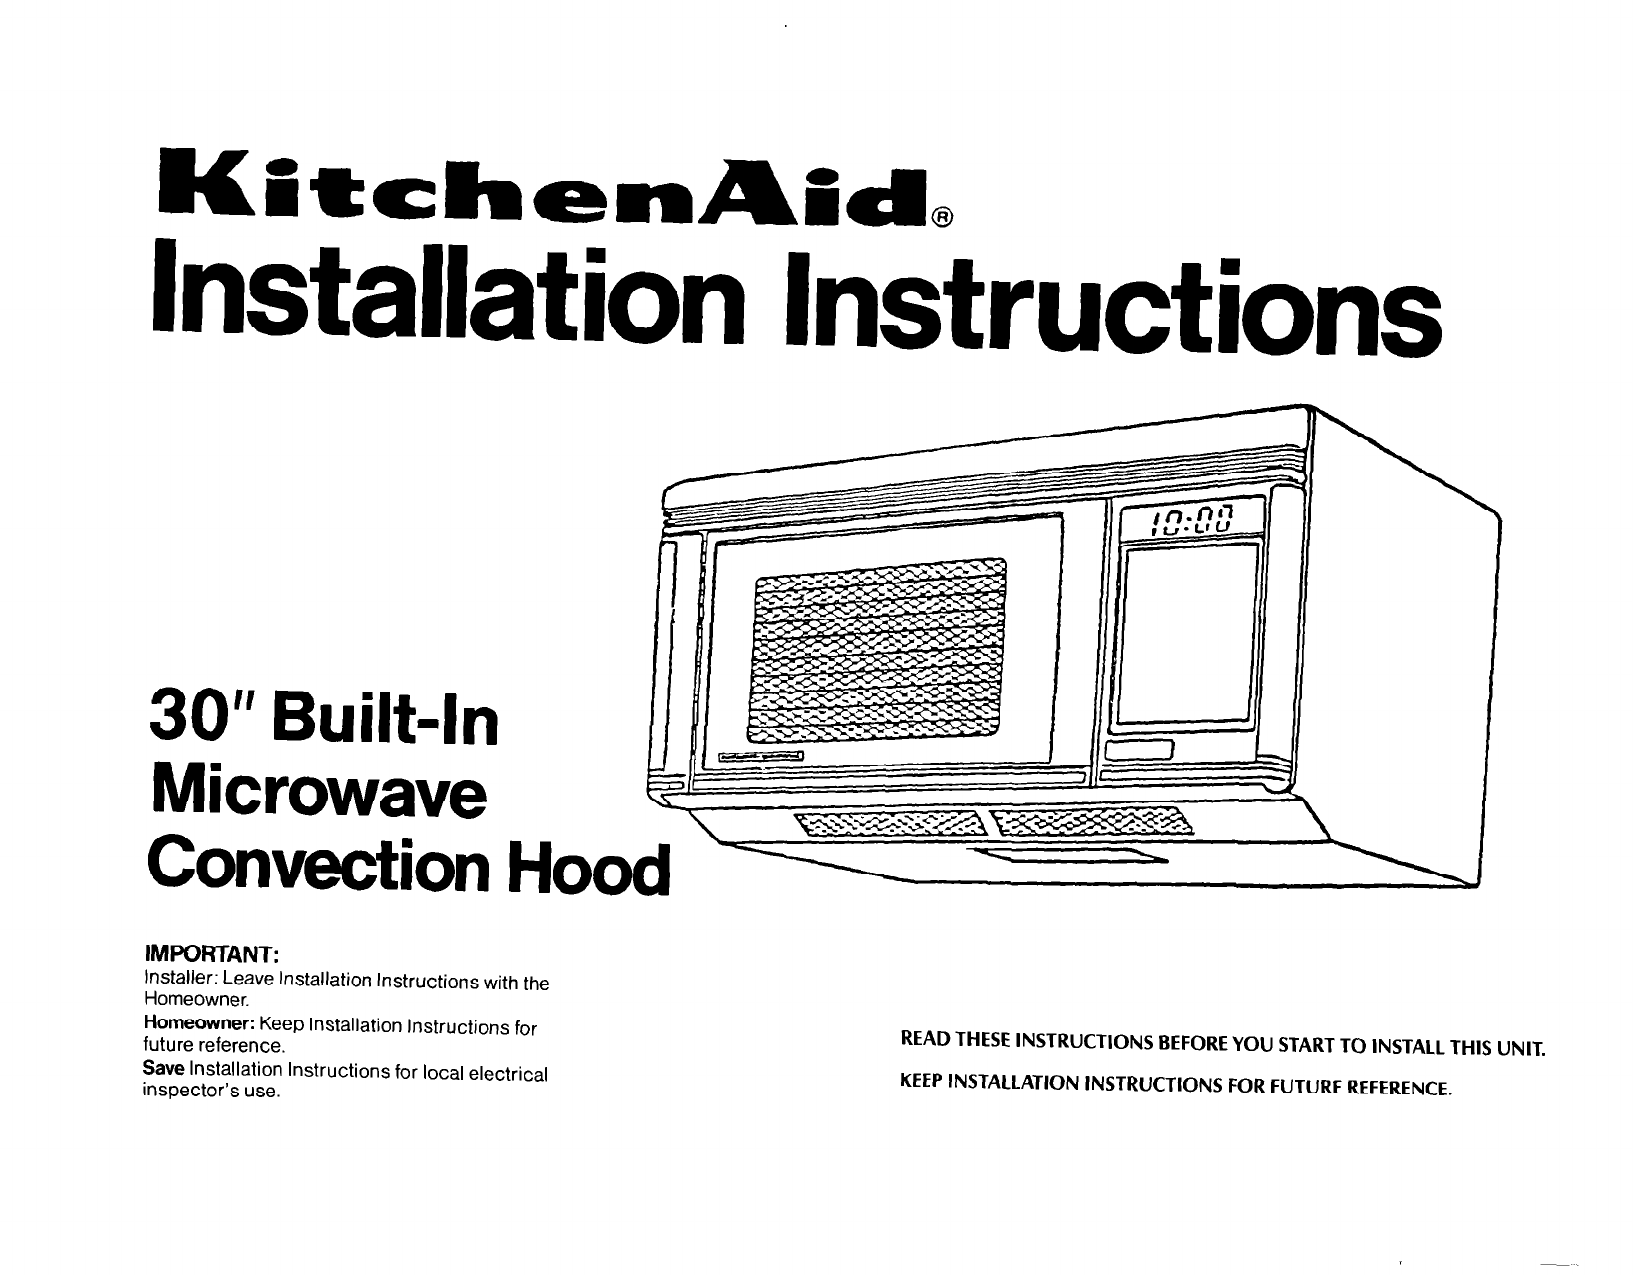 Kitchenaid Microwave Oven 1435 User Guide Manualsonline Com